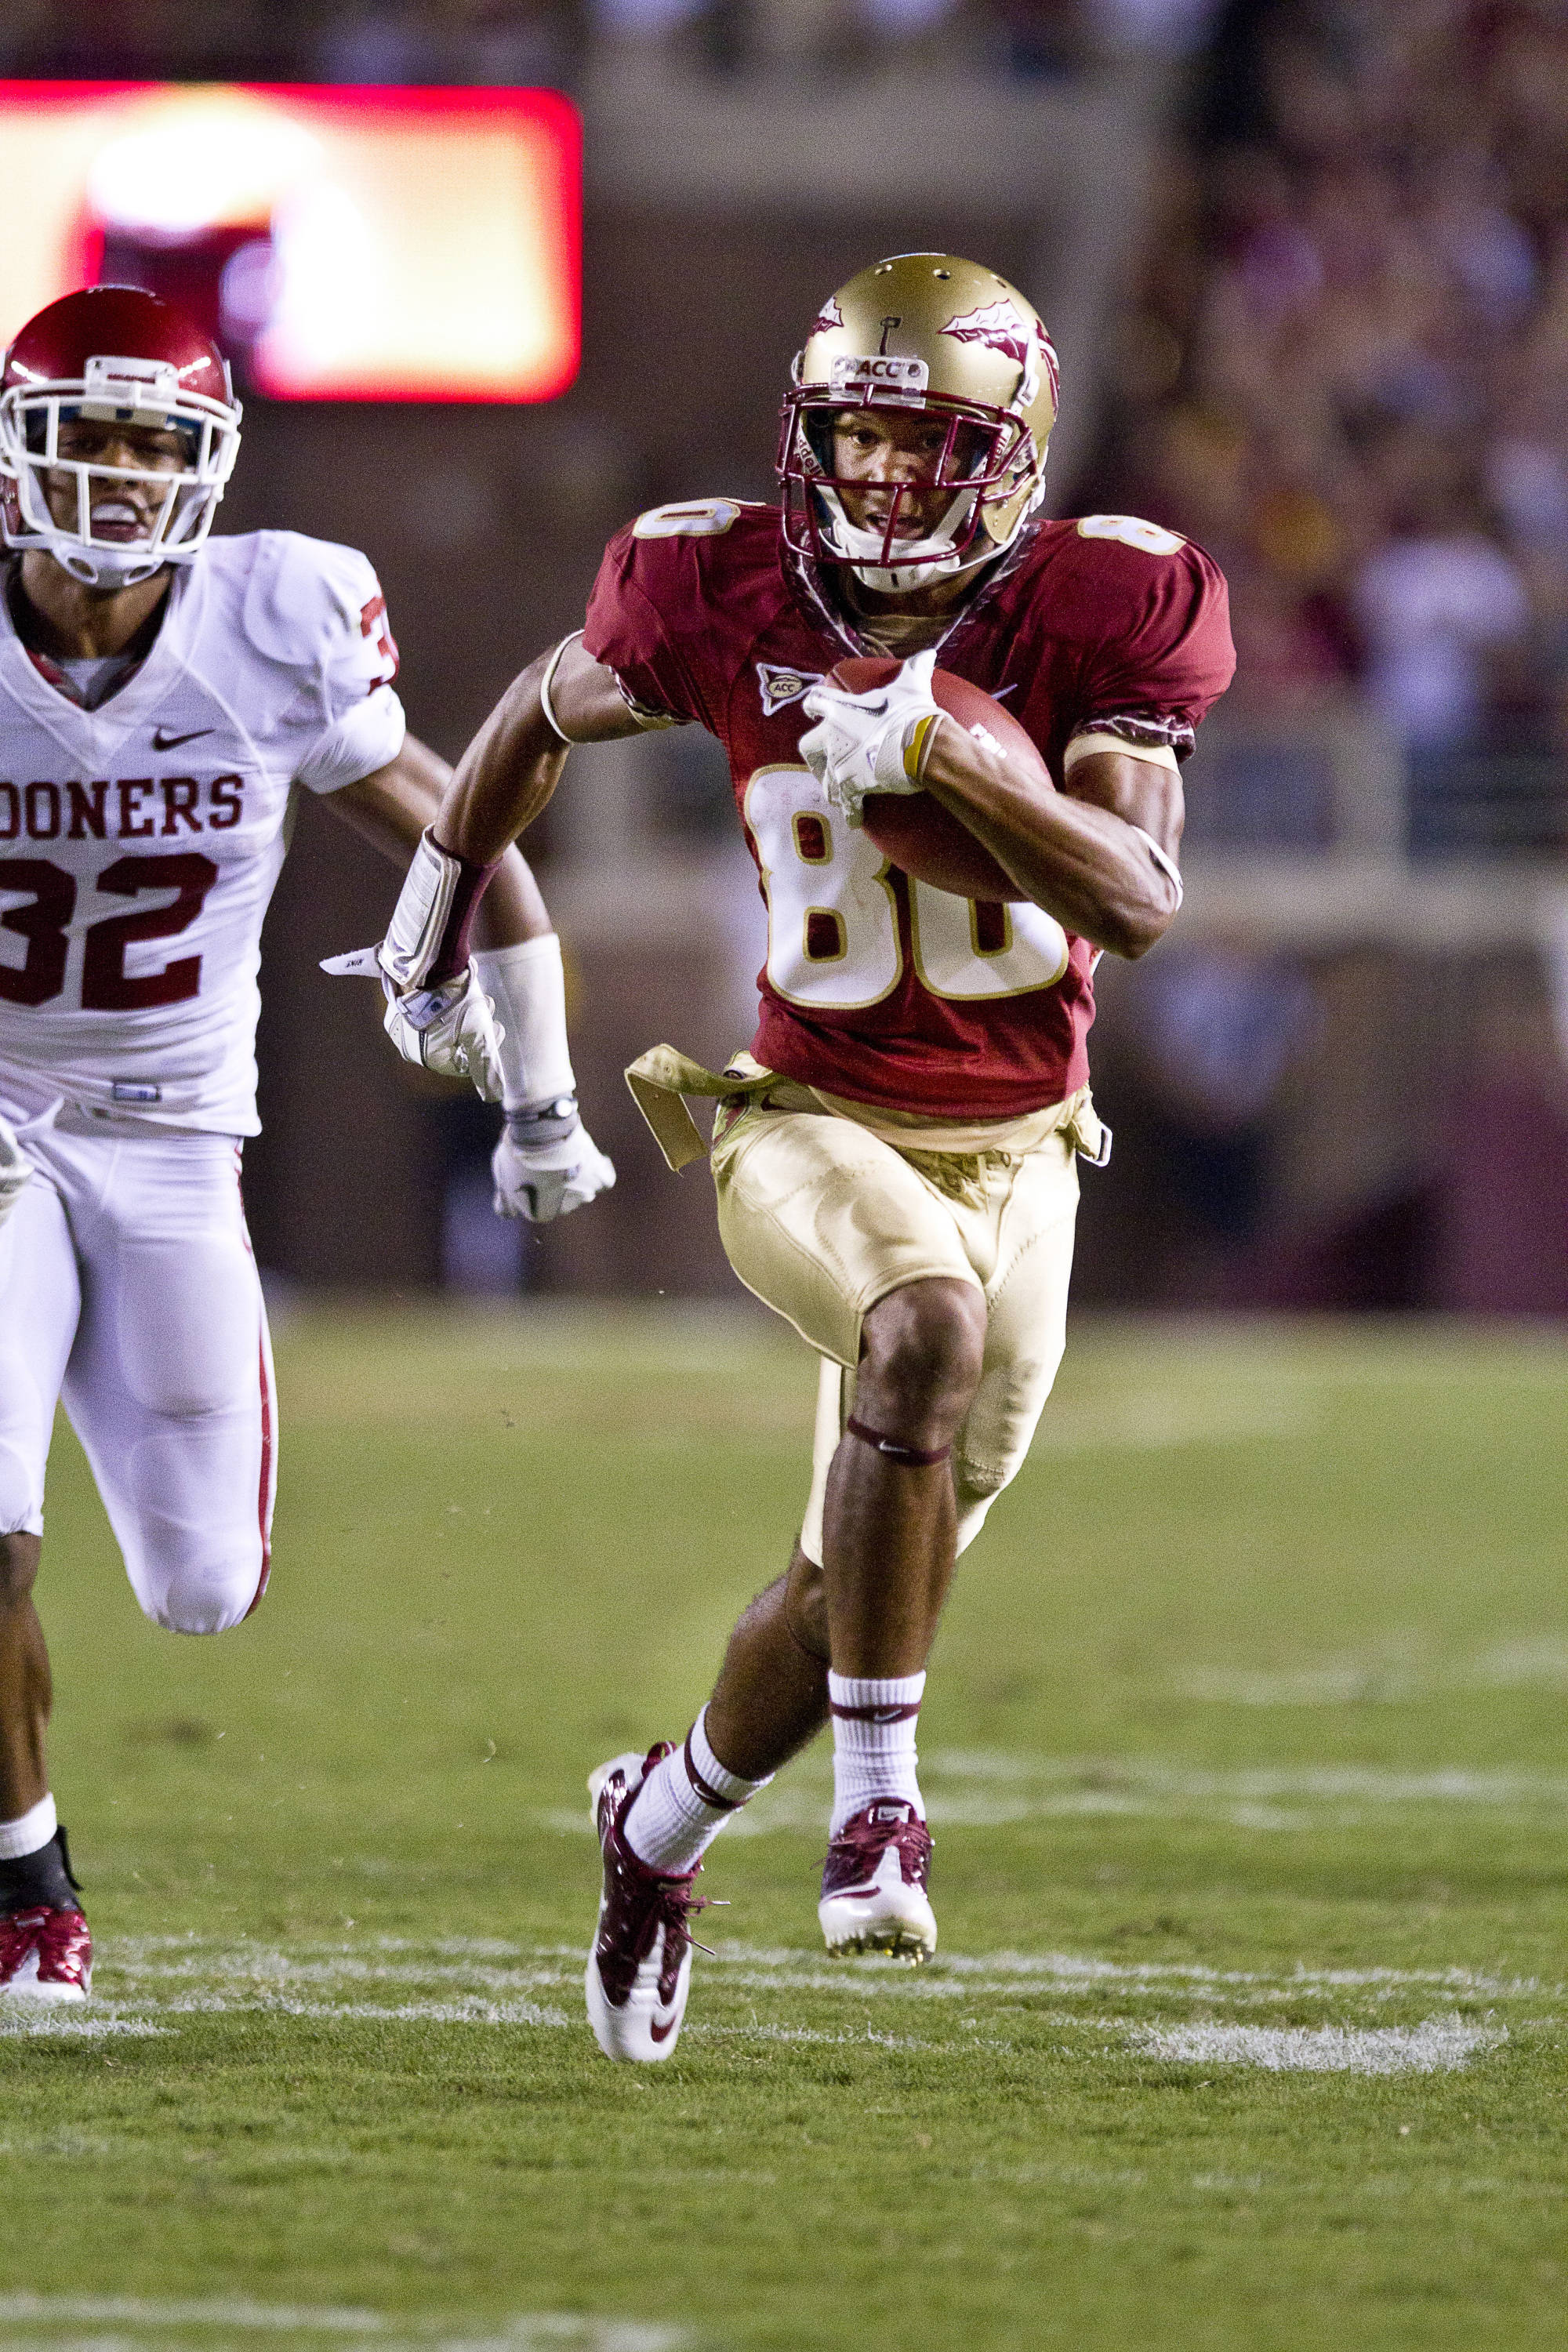 Rashad Greene (80) had one of the most electrifying moments in 2011, with this 52-yard TD pass in the Oklahoma game.